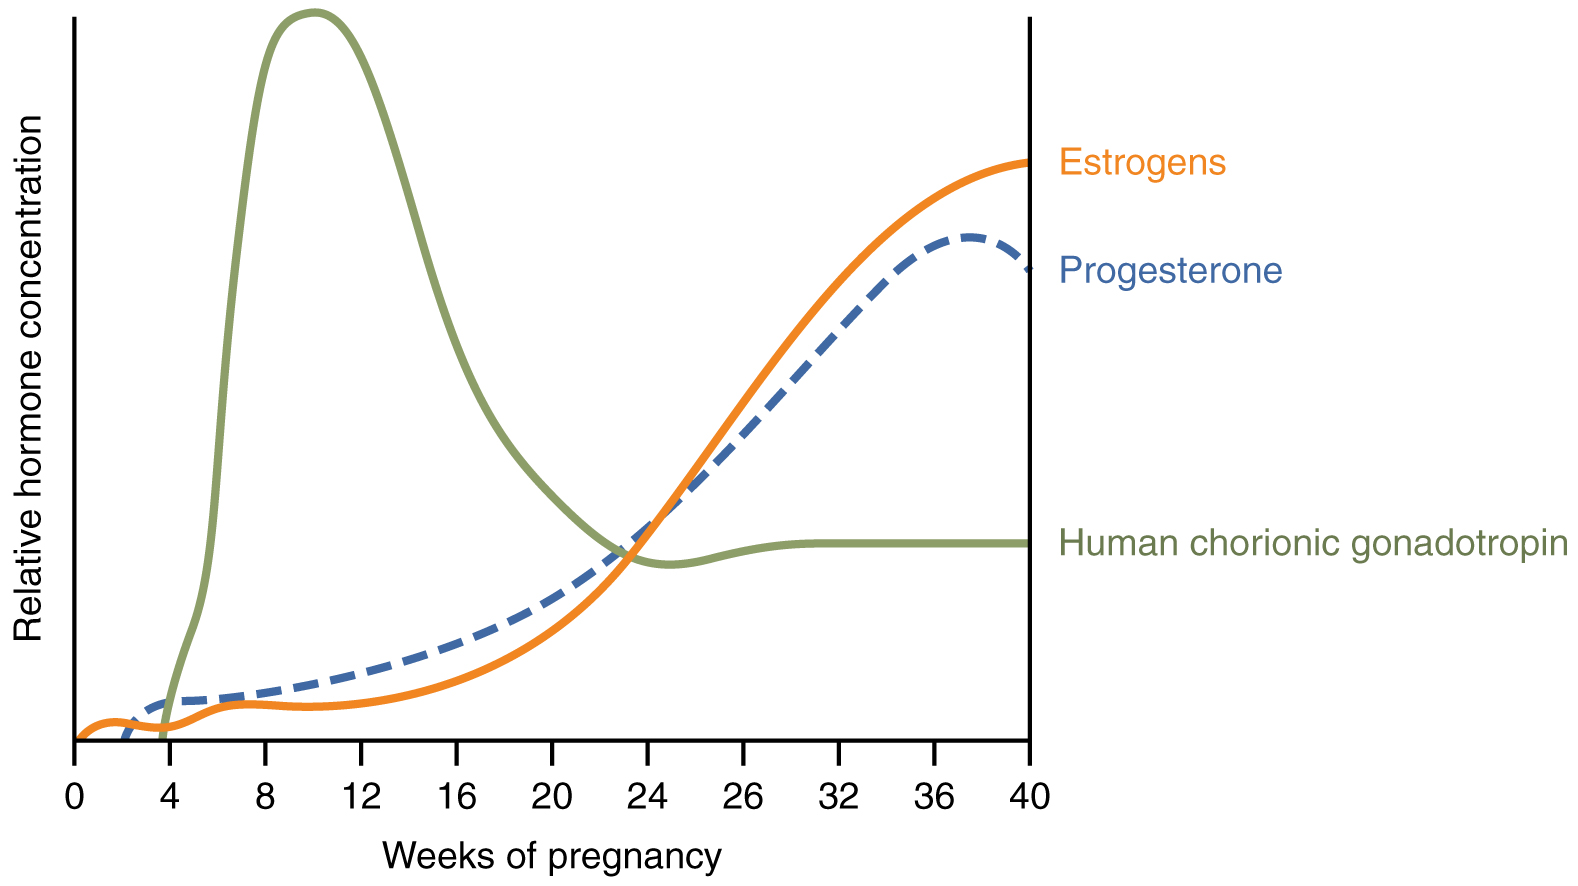 A graph hormone concentration versus week of pregnancy shows how three hormones vary throughout pregnancy.